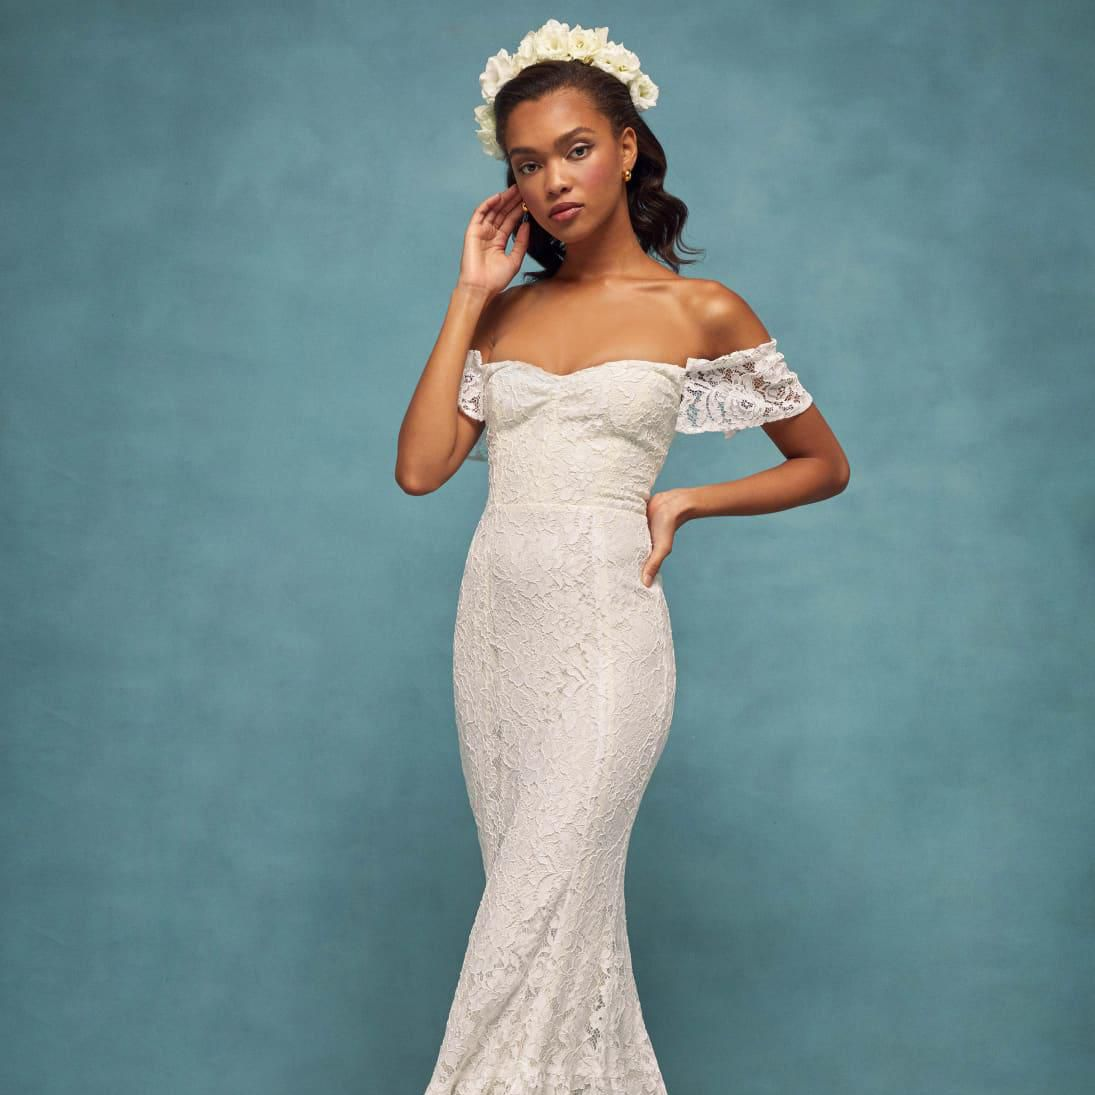 ccb23a54d2 21 Dream Wedding Dresses Under $1,000